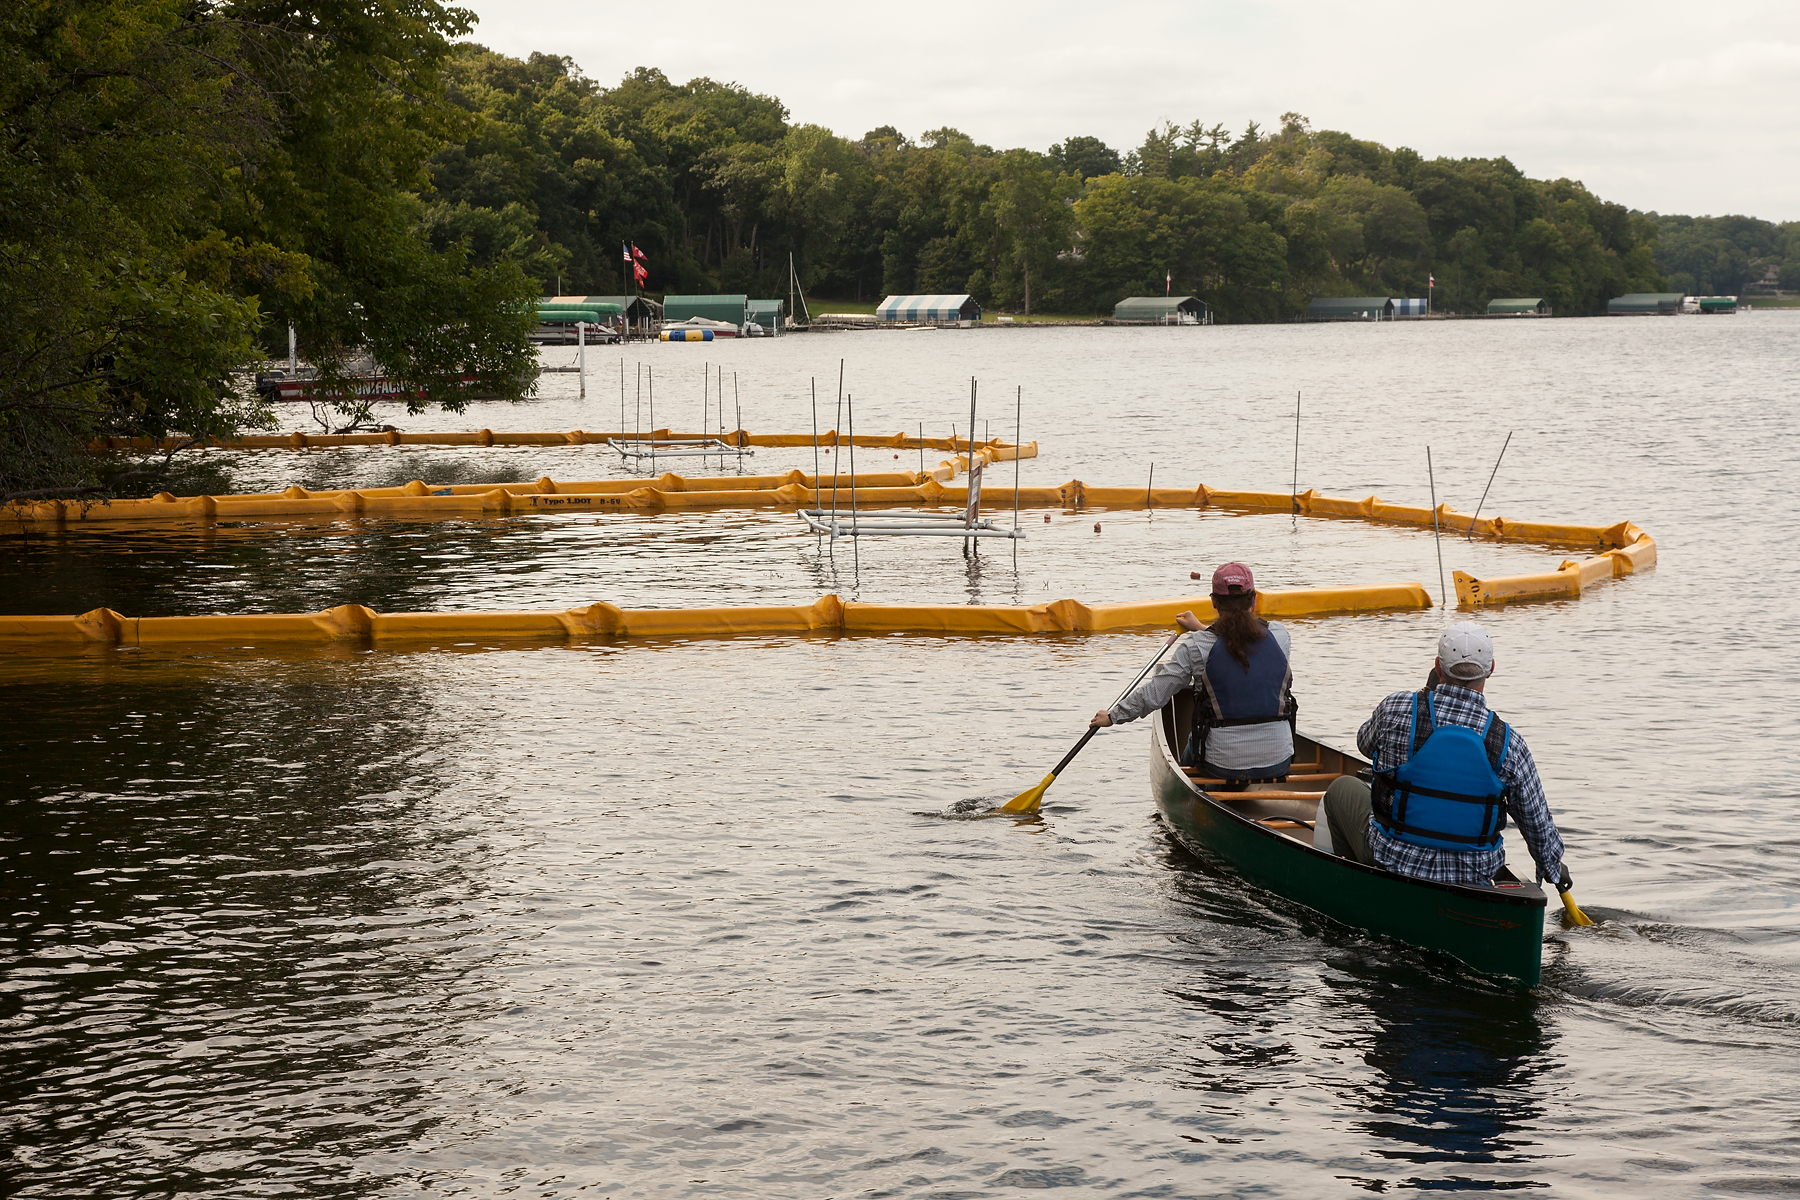 MAISRC researchers Mike McCartney and Sarah Baker paddle to a zebra mussel research site on Lake Minnetonka.